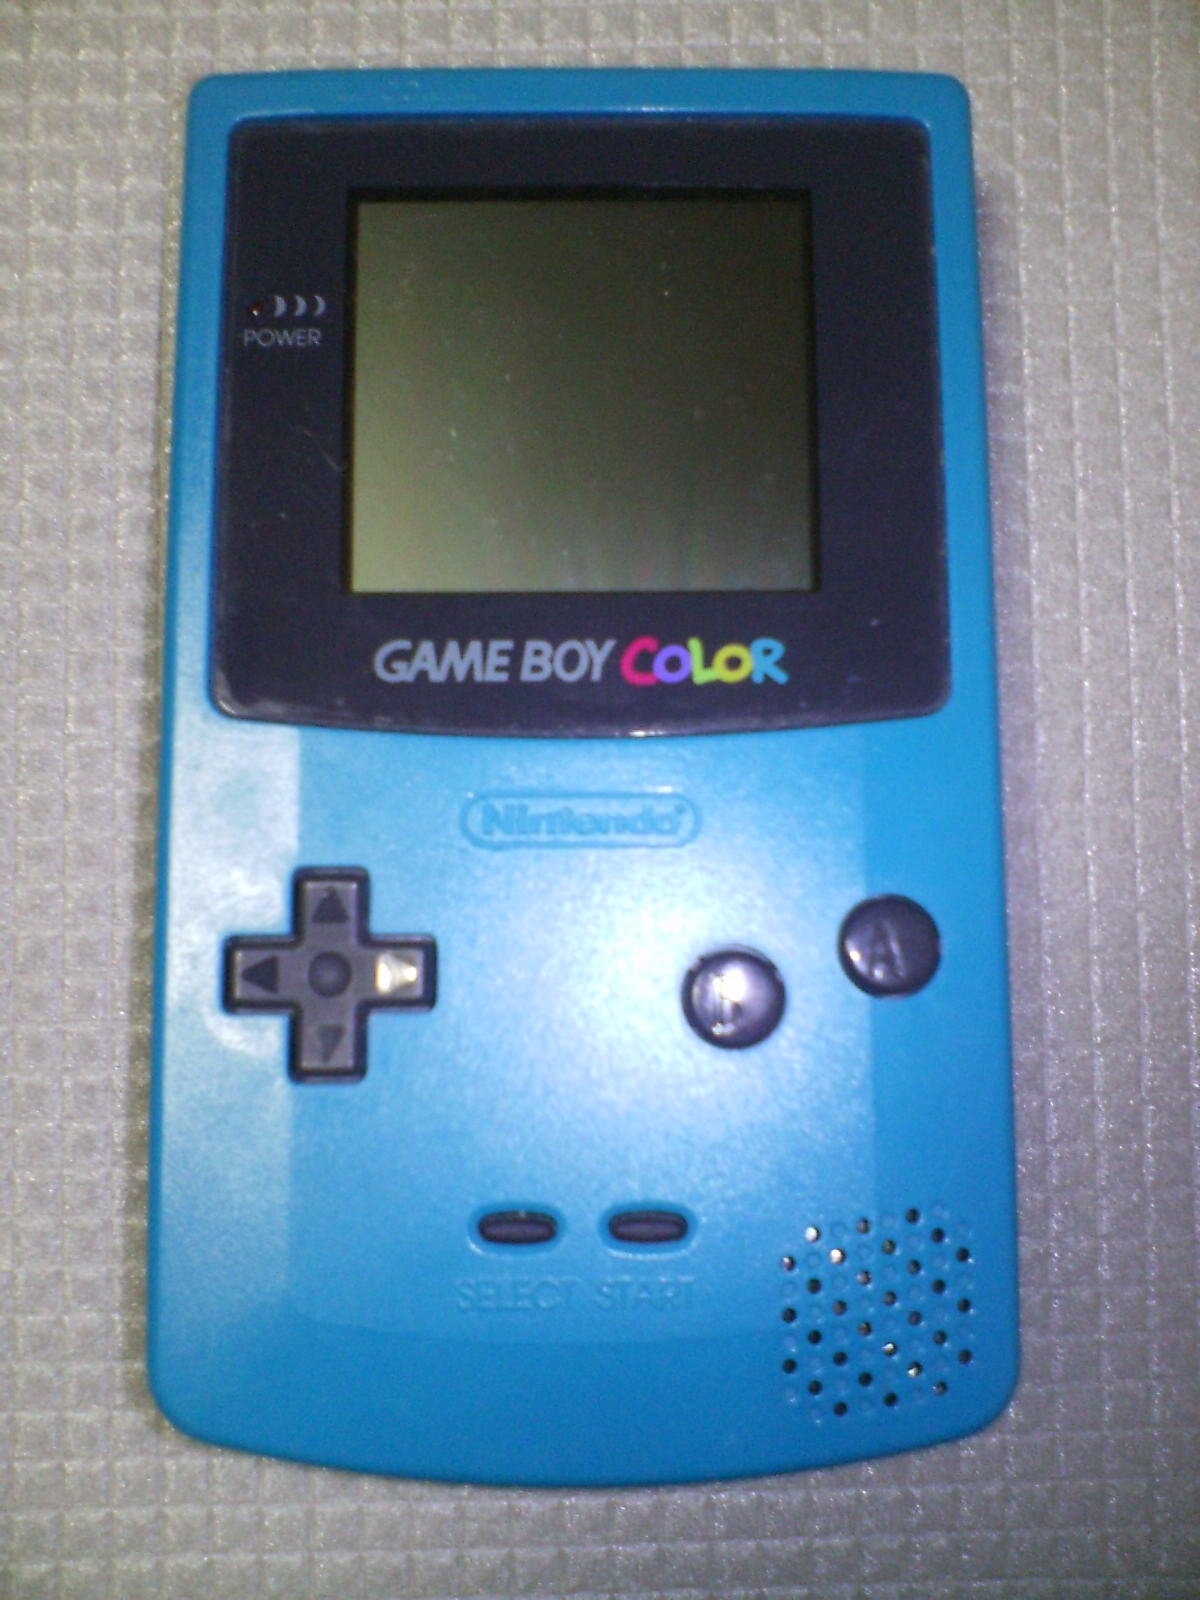 http://upload.wikimedia.org/wikipedia/commons/archive/f/fe/20070922154958!Game_Boy_Color.jpg